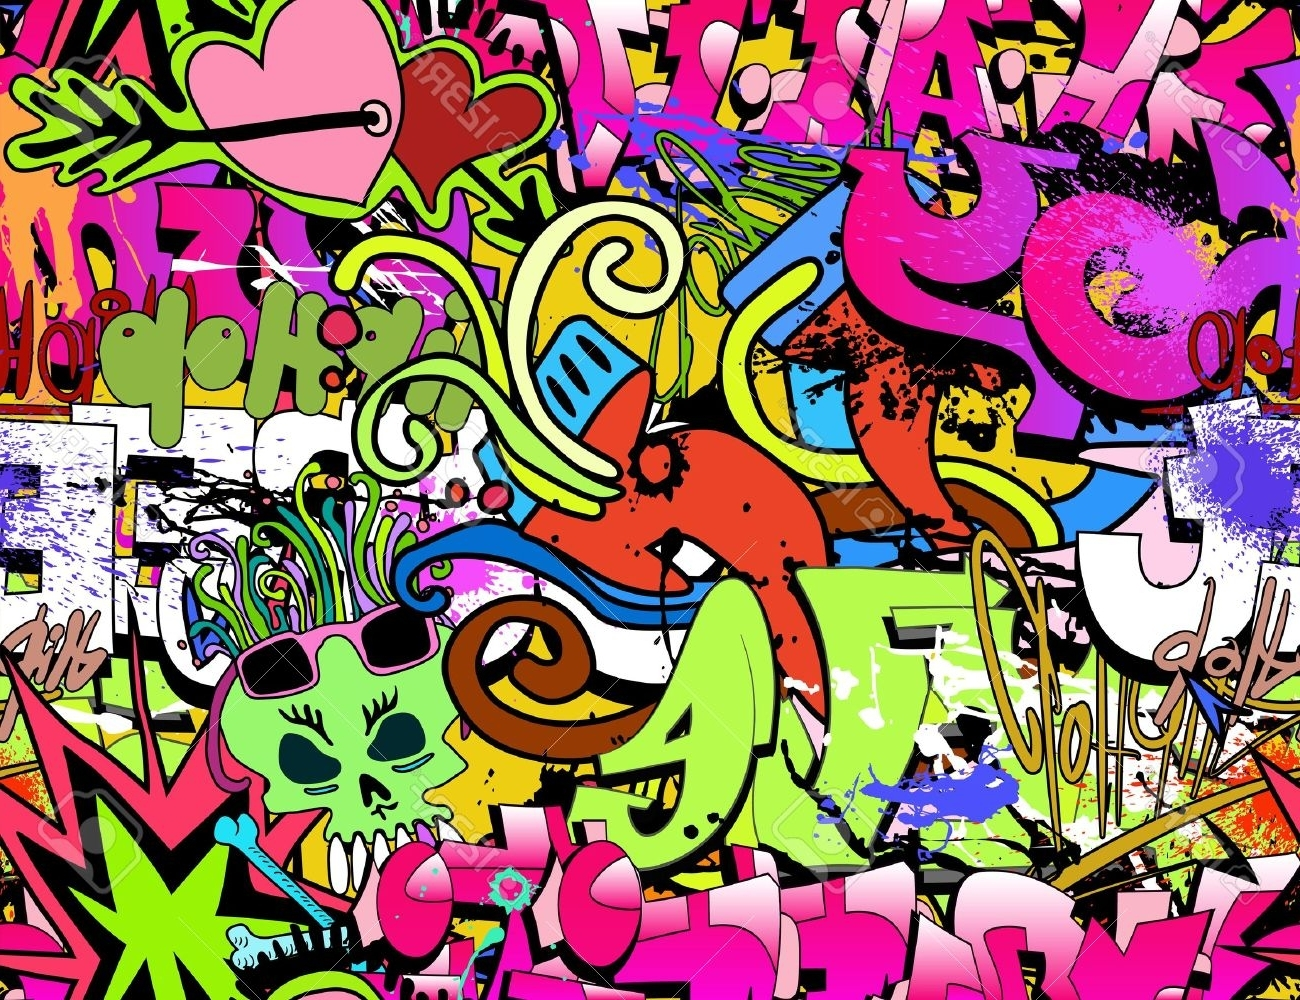 Graffiti Wall Art Background Hip-Hop Style Seamless Texture with Well known Hip Hop Wall Art